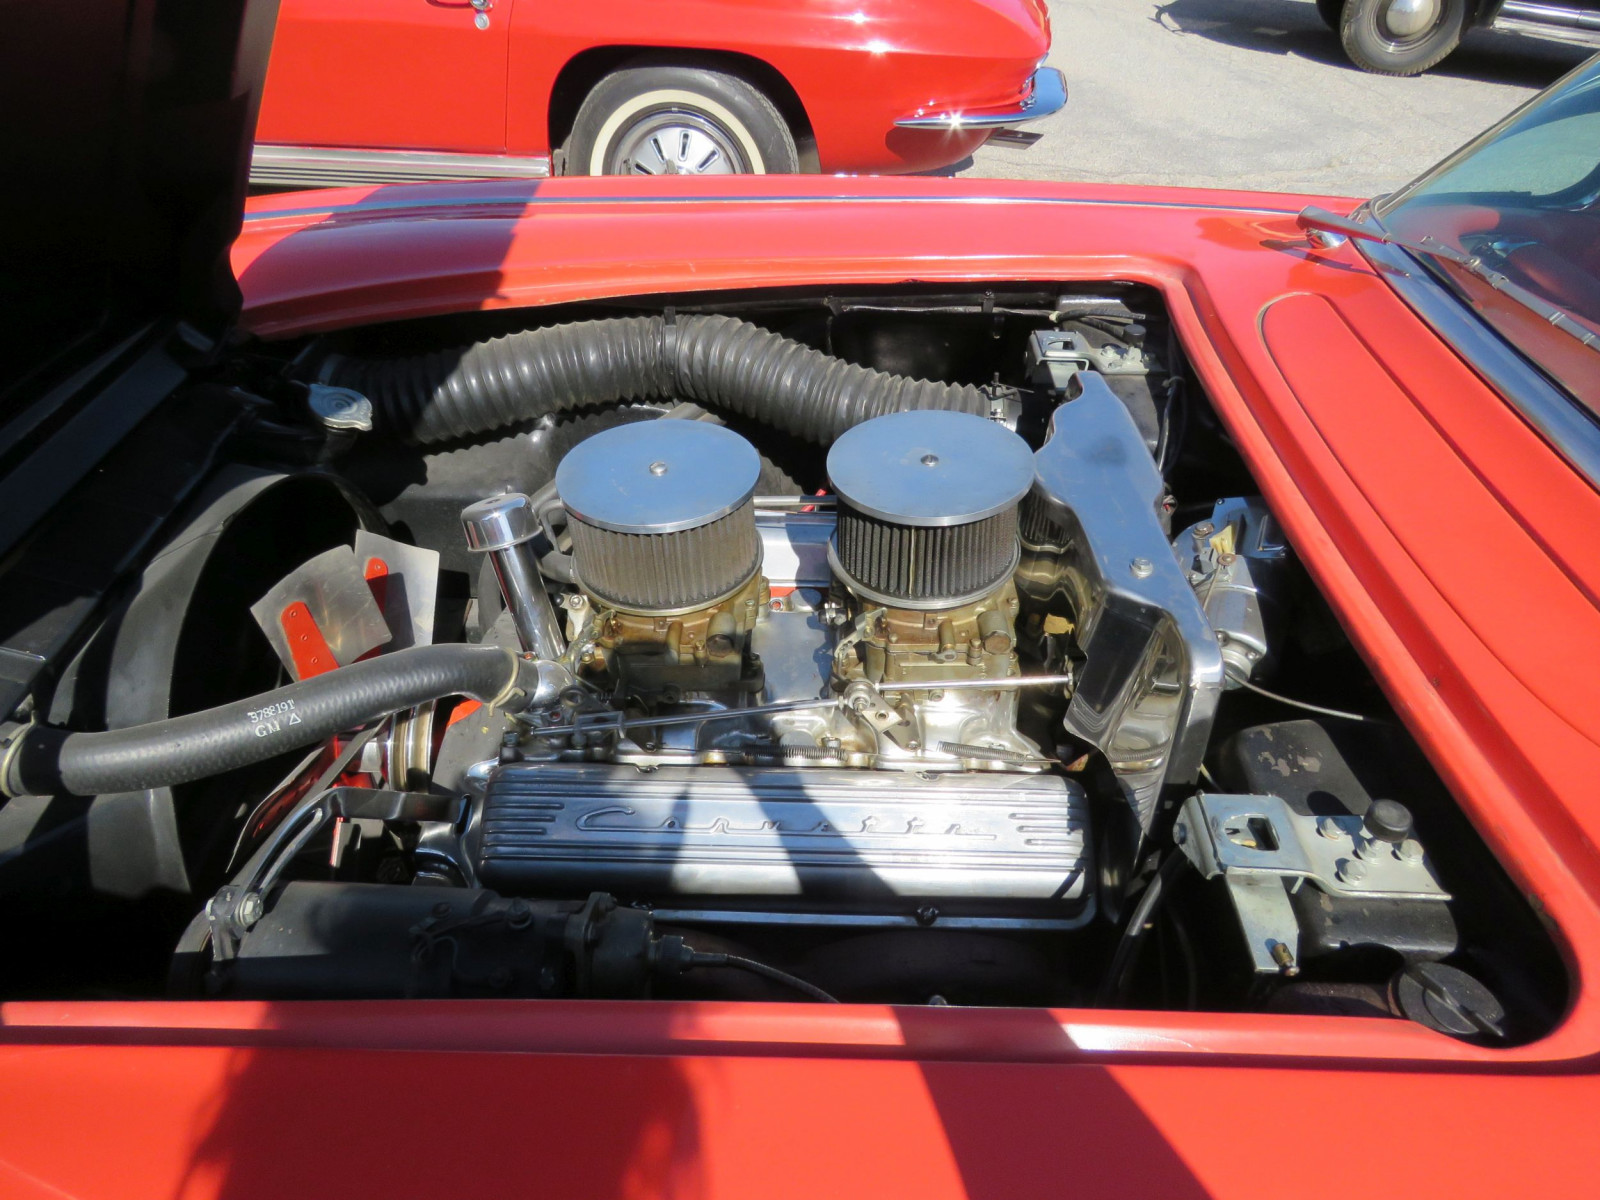 1958 CHEVROLET CORVETTE FUEL INJECTED ROADSTER - Image 19